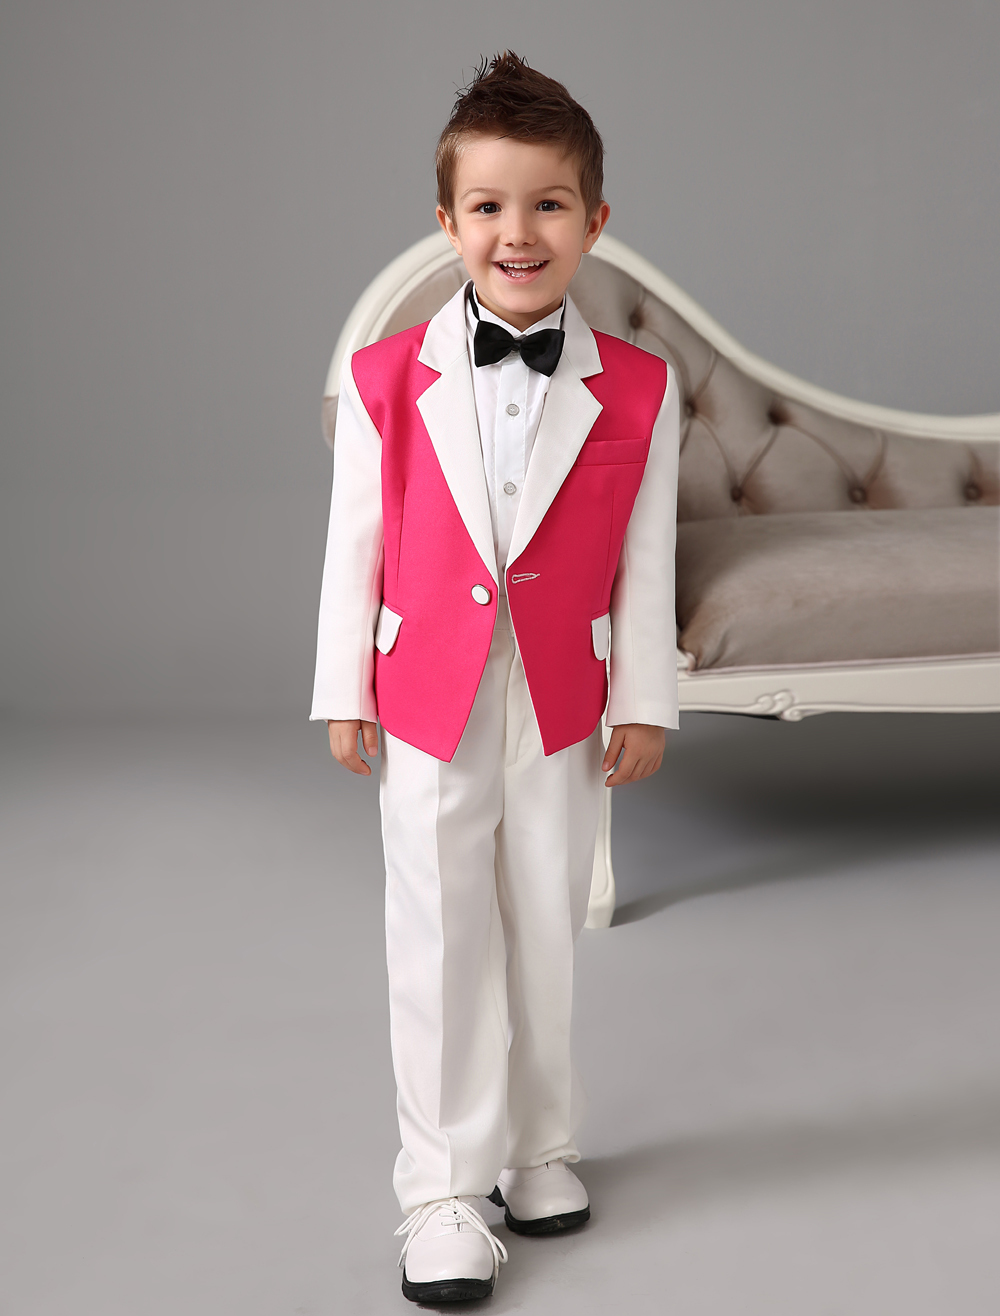 Four Pieces Luxurious formal Red and white kids boys suits Tuxedo With Black Bow Tie boys outfit wedding Ring Bearer Suits(China (Mainland))